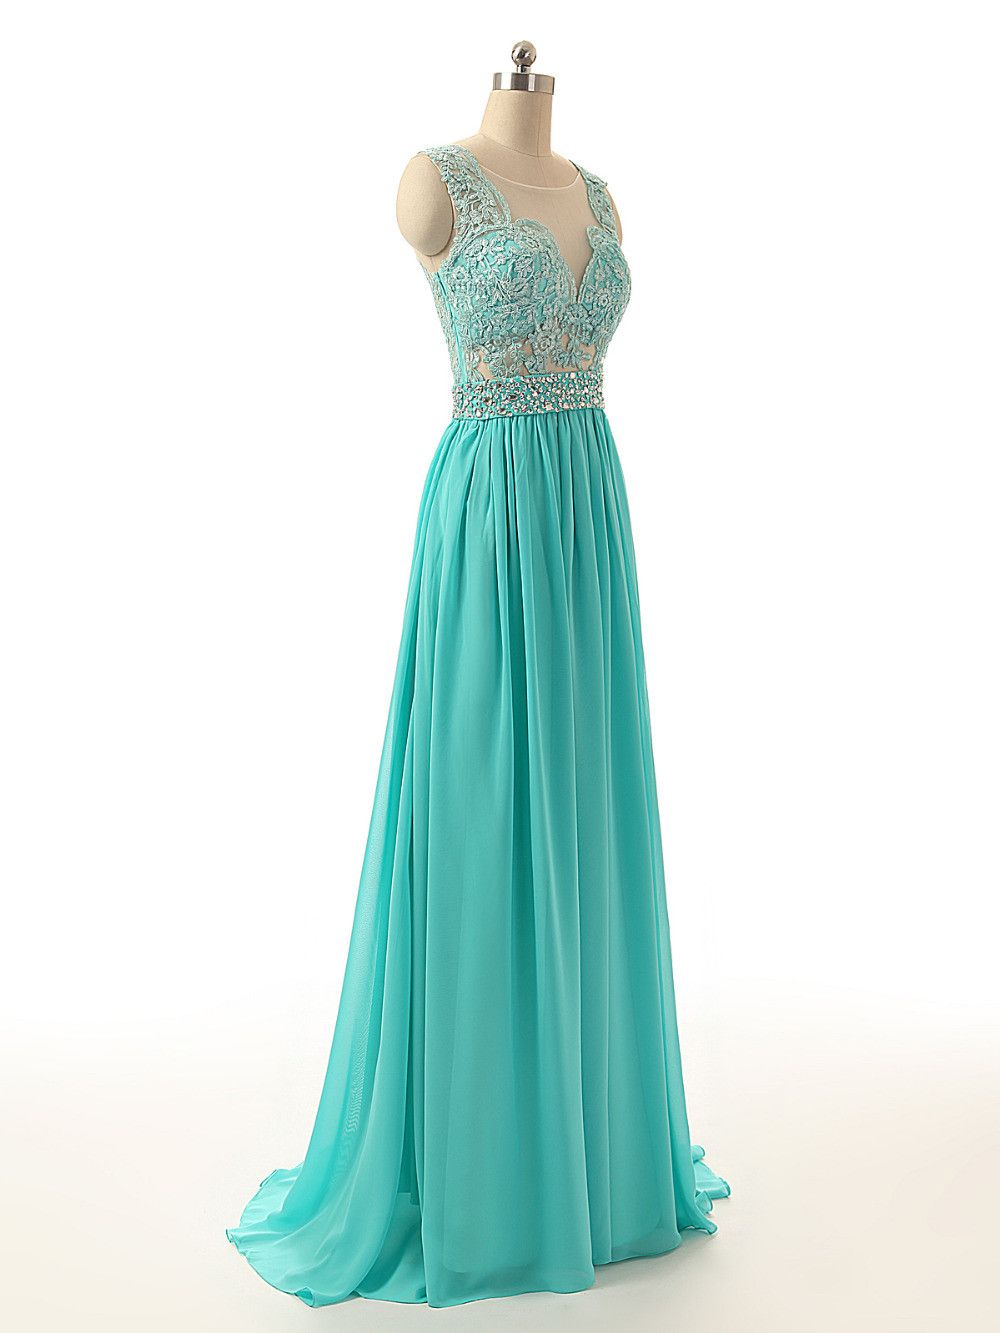 Sheer neck back see through turquoise long bridesmaid dress unique